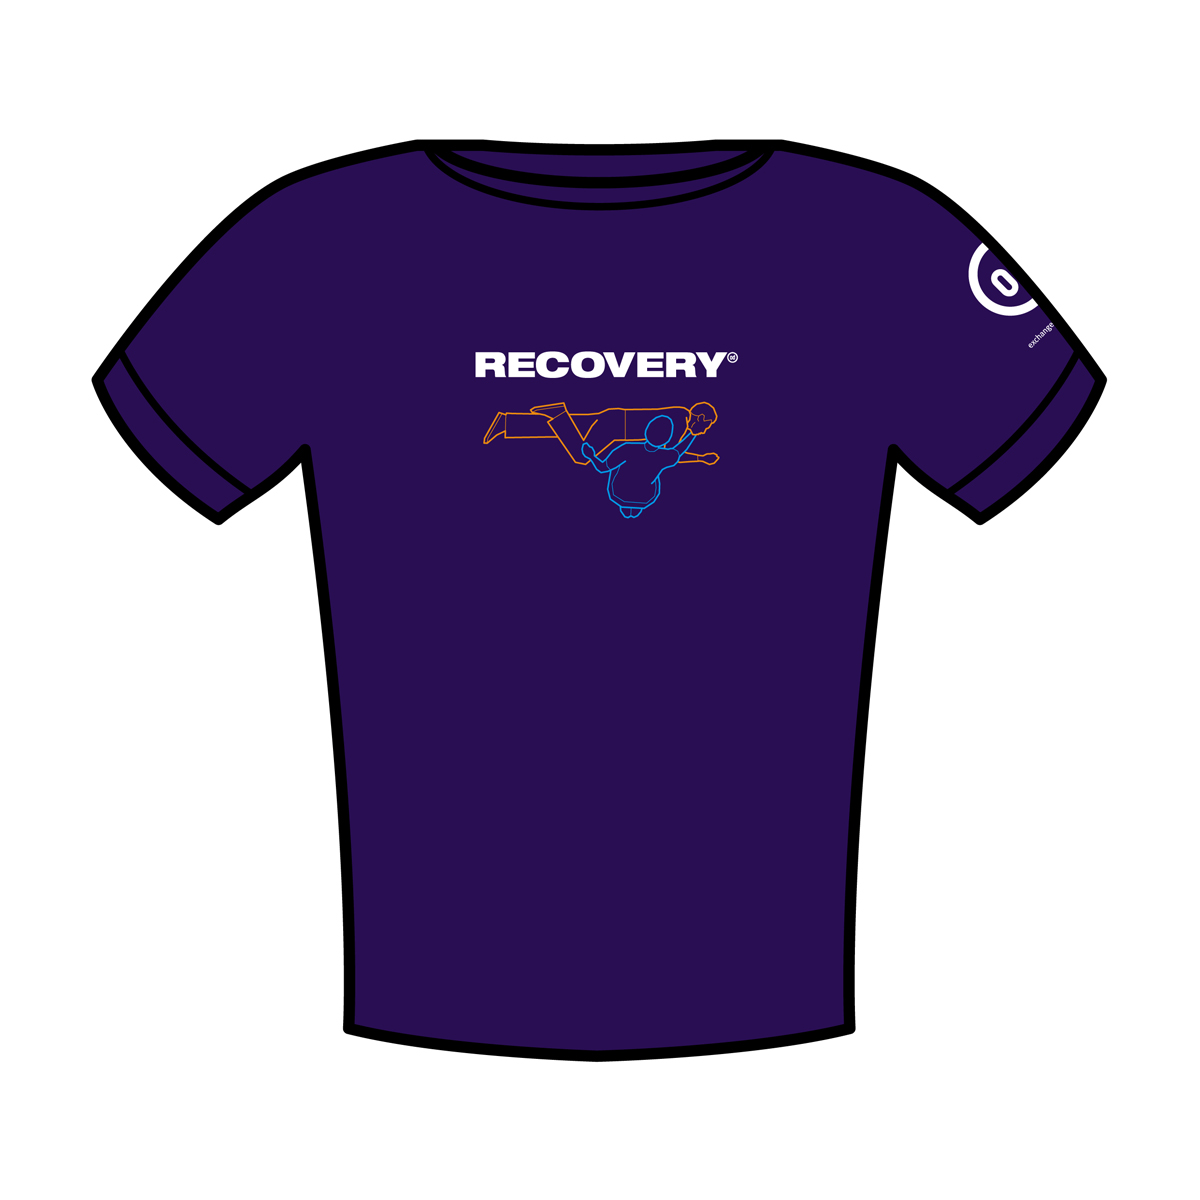 Recovery T-shirt pack of 12 (mixed sizes)